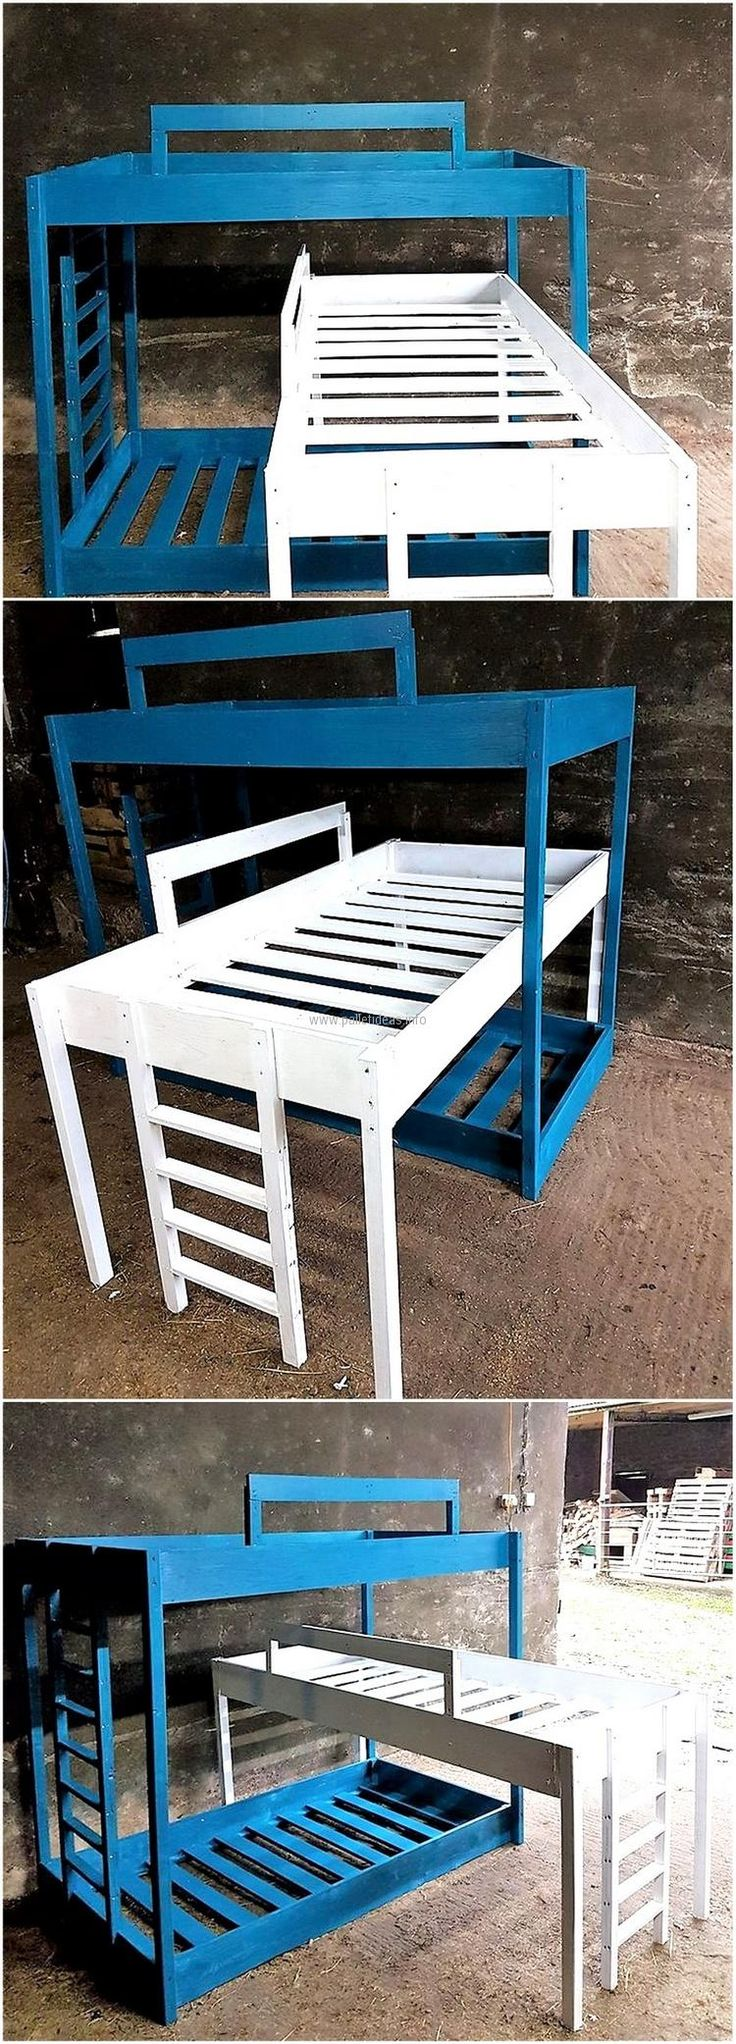 Wait if you are going to buy separate beds for your kids, you can create a single bed for them at home with the help of recycled wood pallets. You can see the idea of how you will be creating the stairs, so the kids can easily reach their bed.